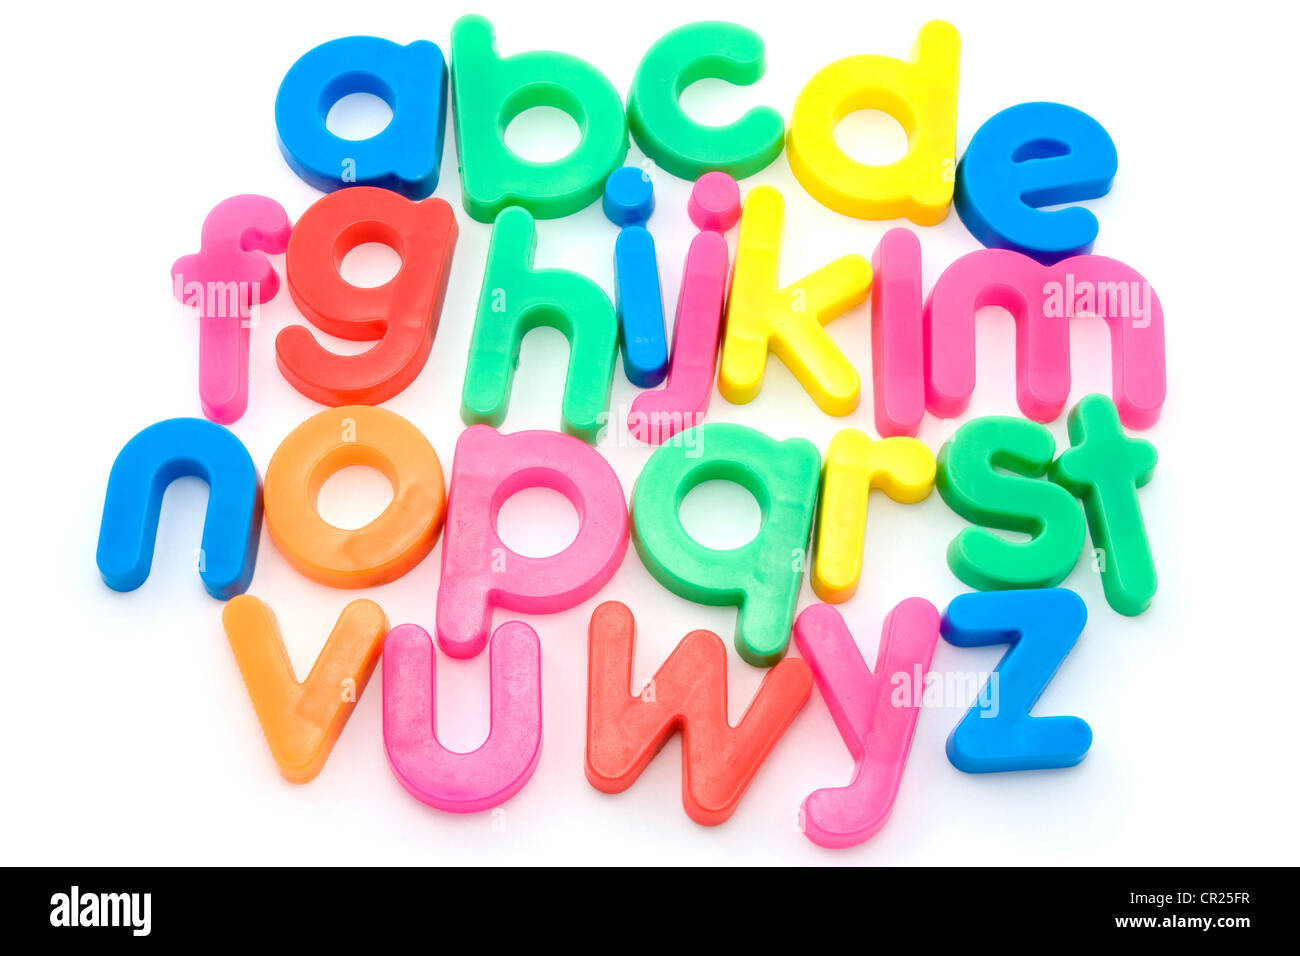 Abc Letter Plastic Colors Stock Photos & Abc Letter Plastic Colors ...